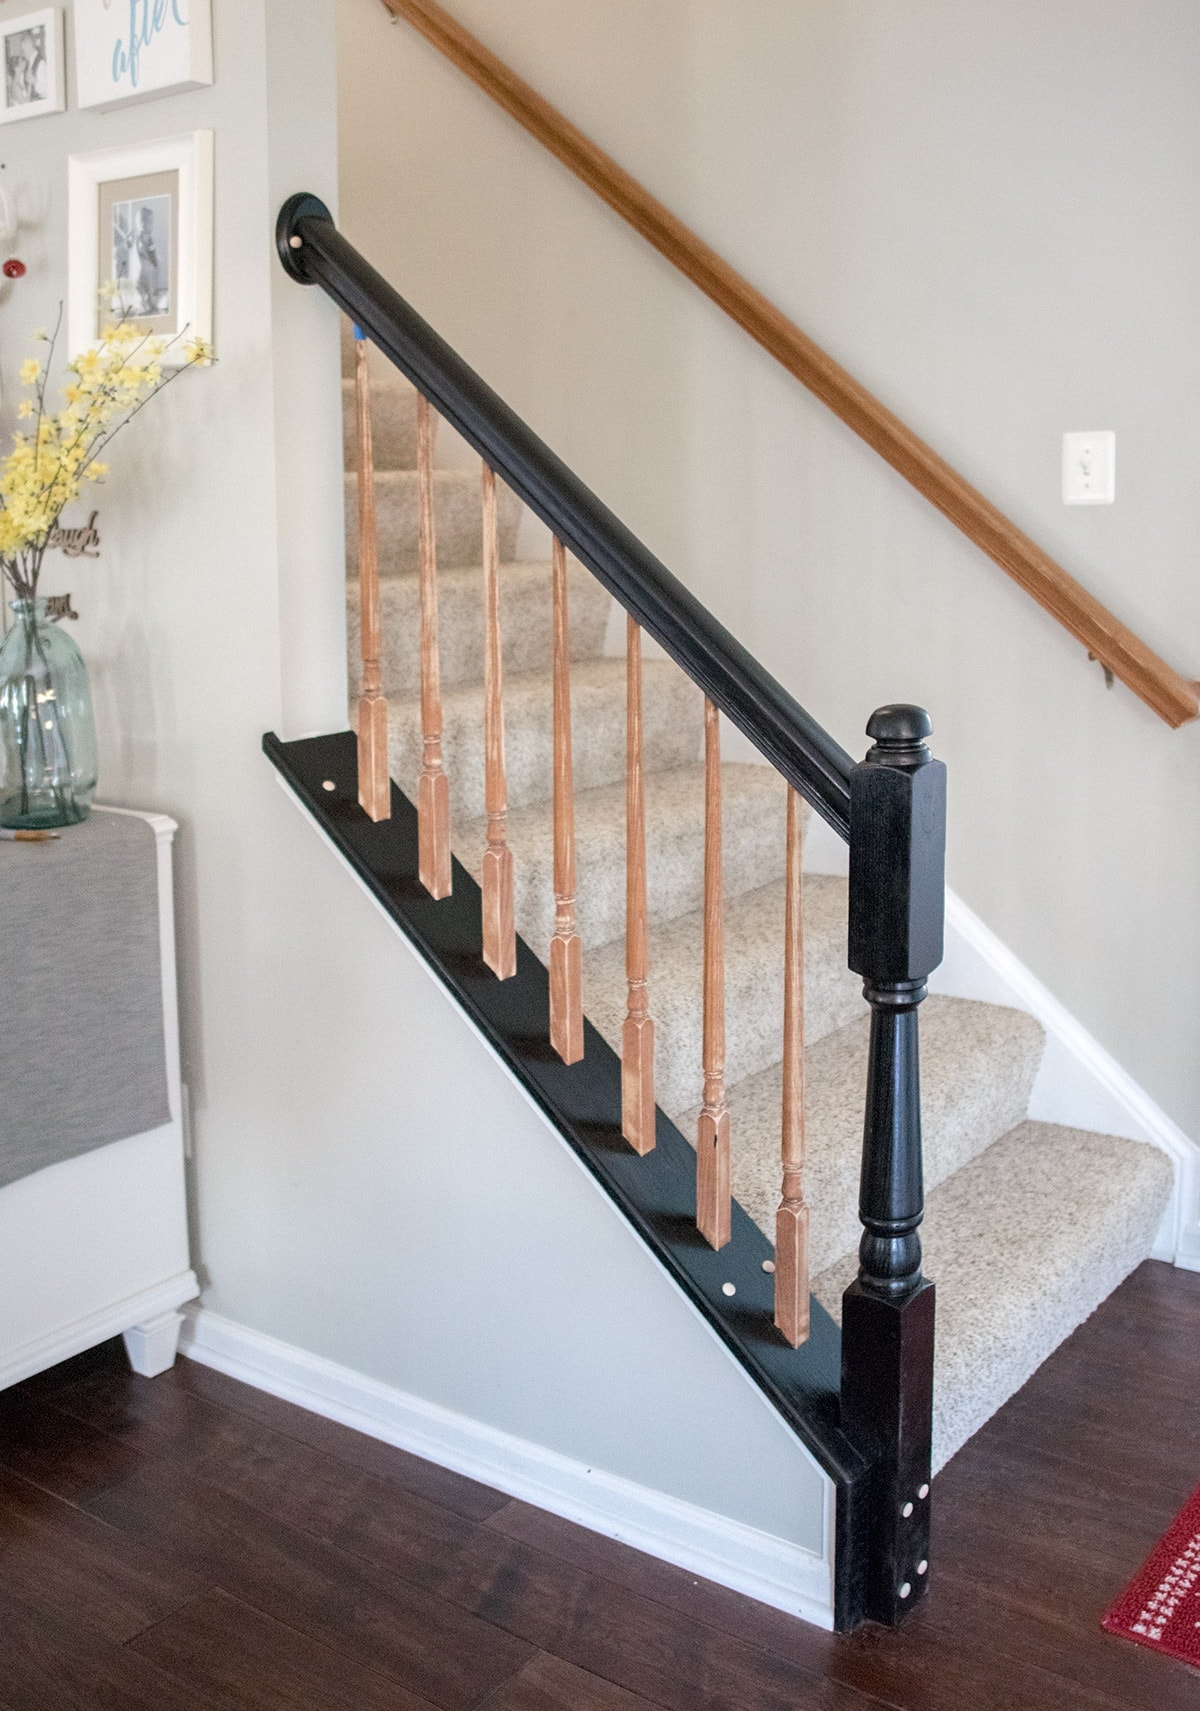 In progress of painting oak wood stairwell with a new, black finish